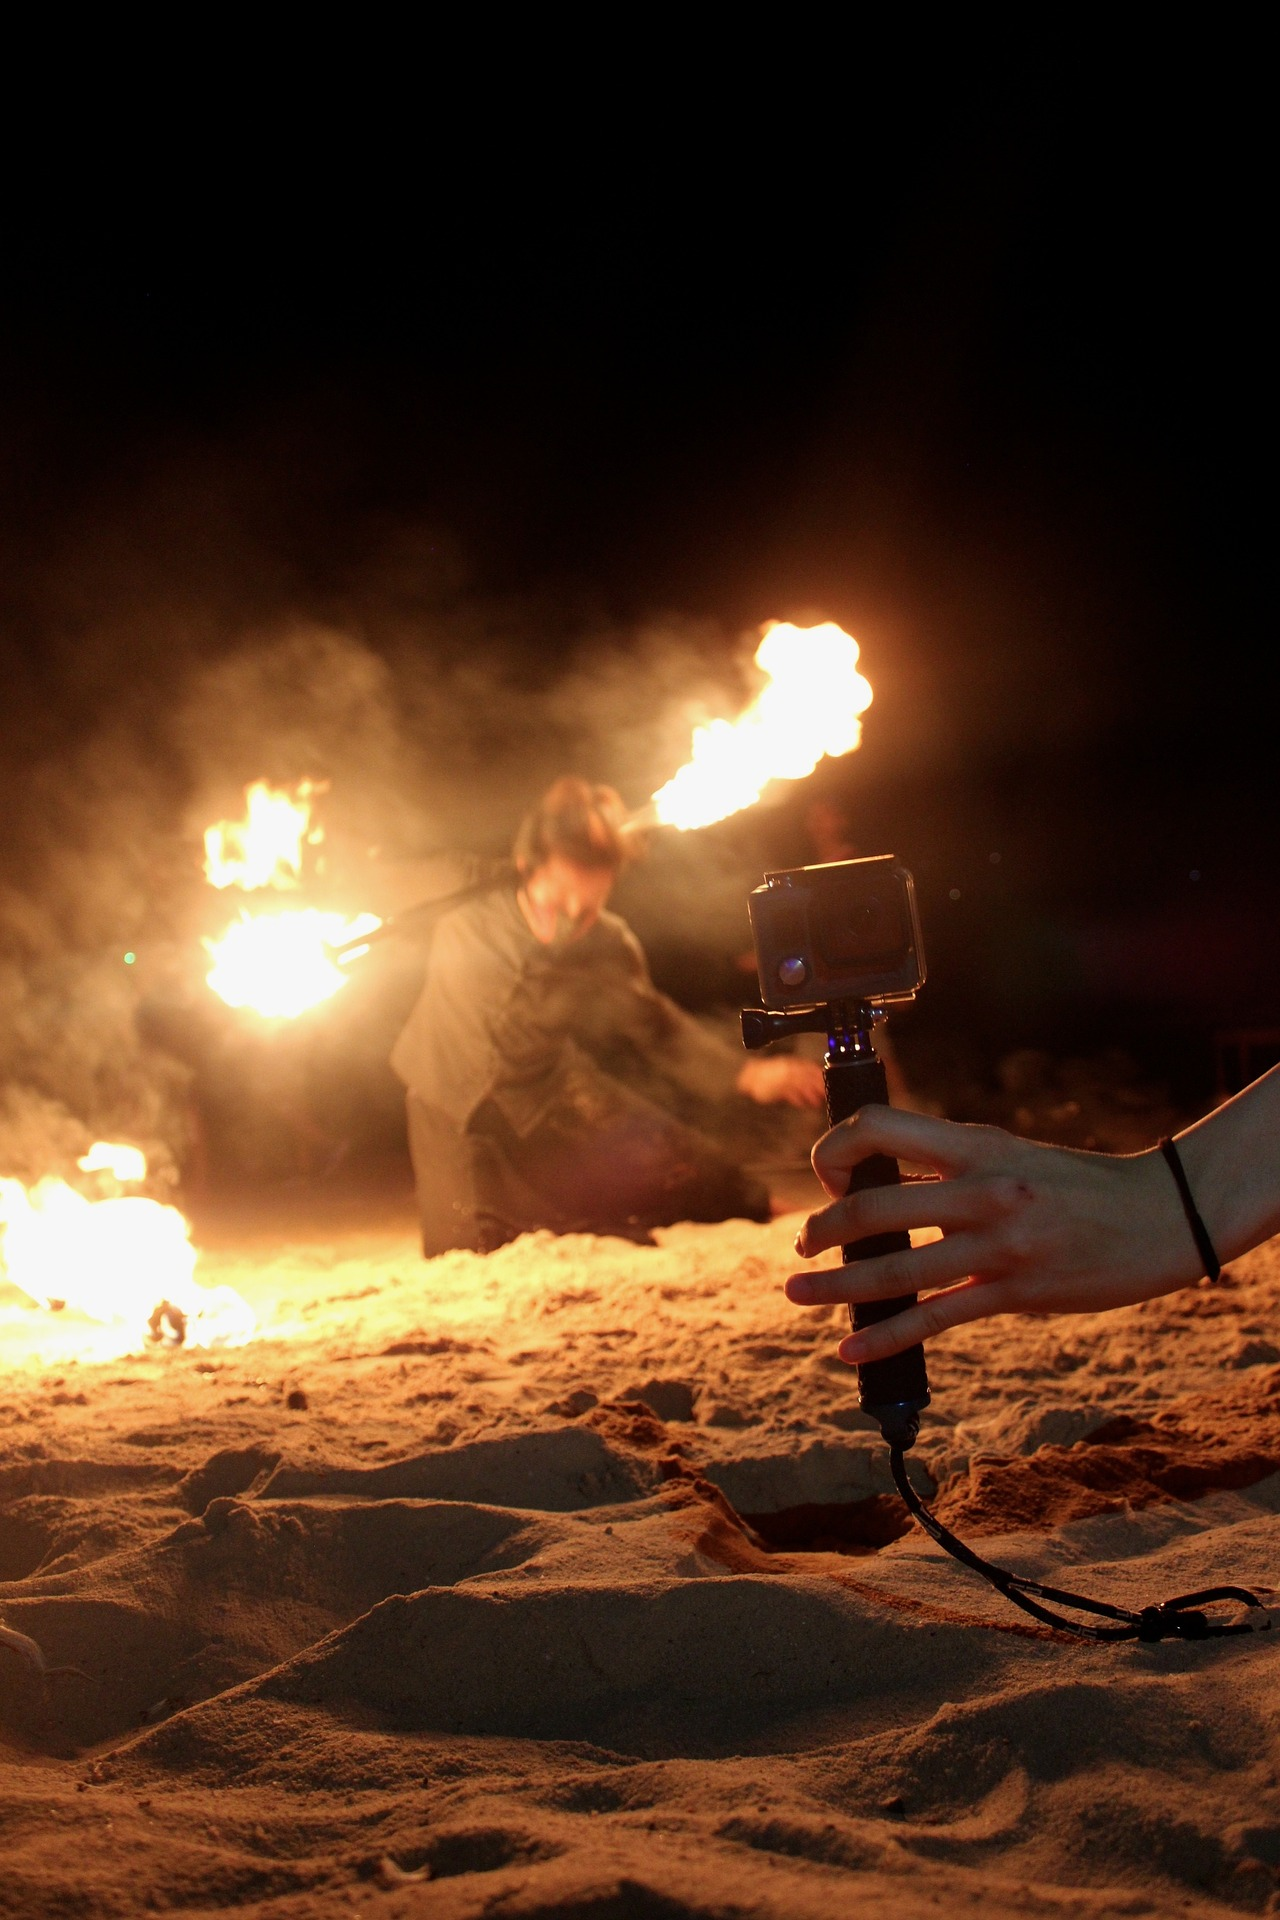 Action camera capturing fire show